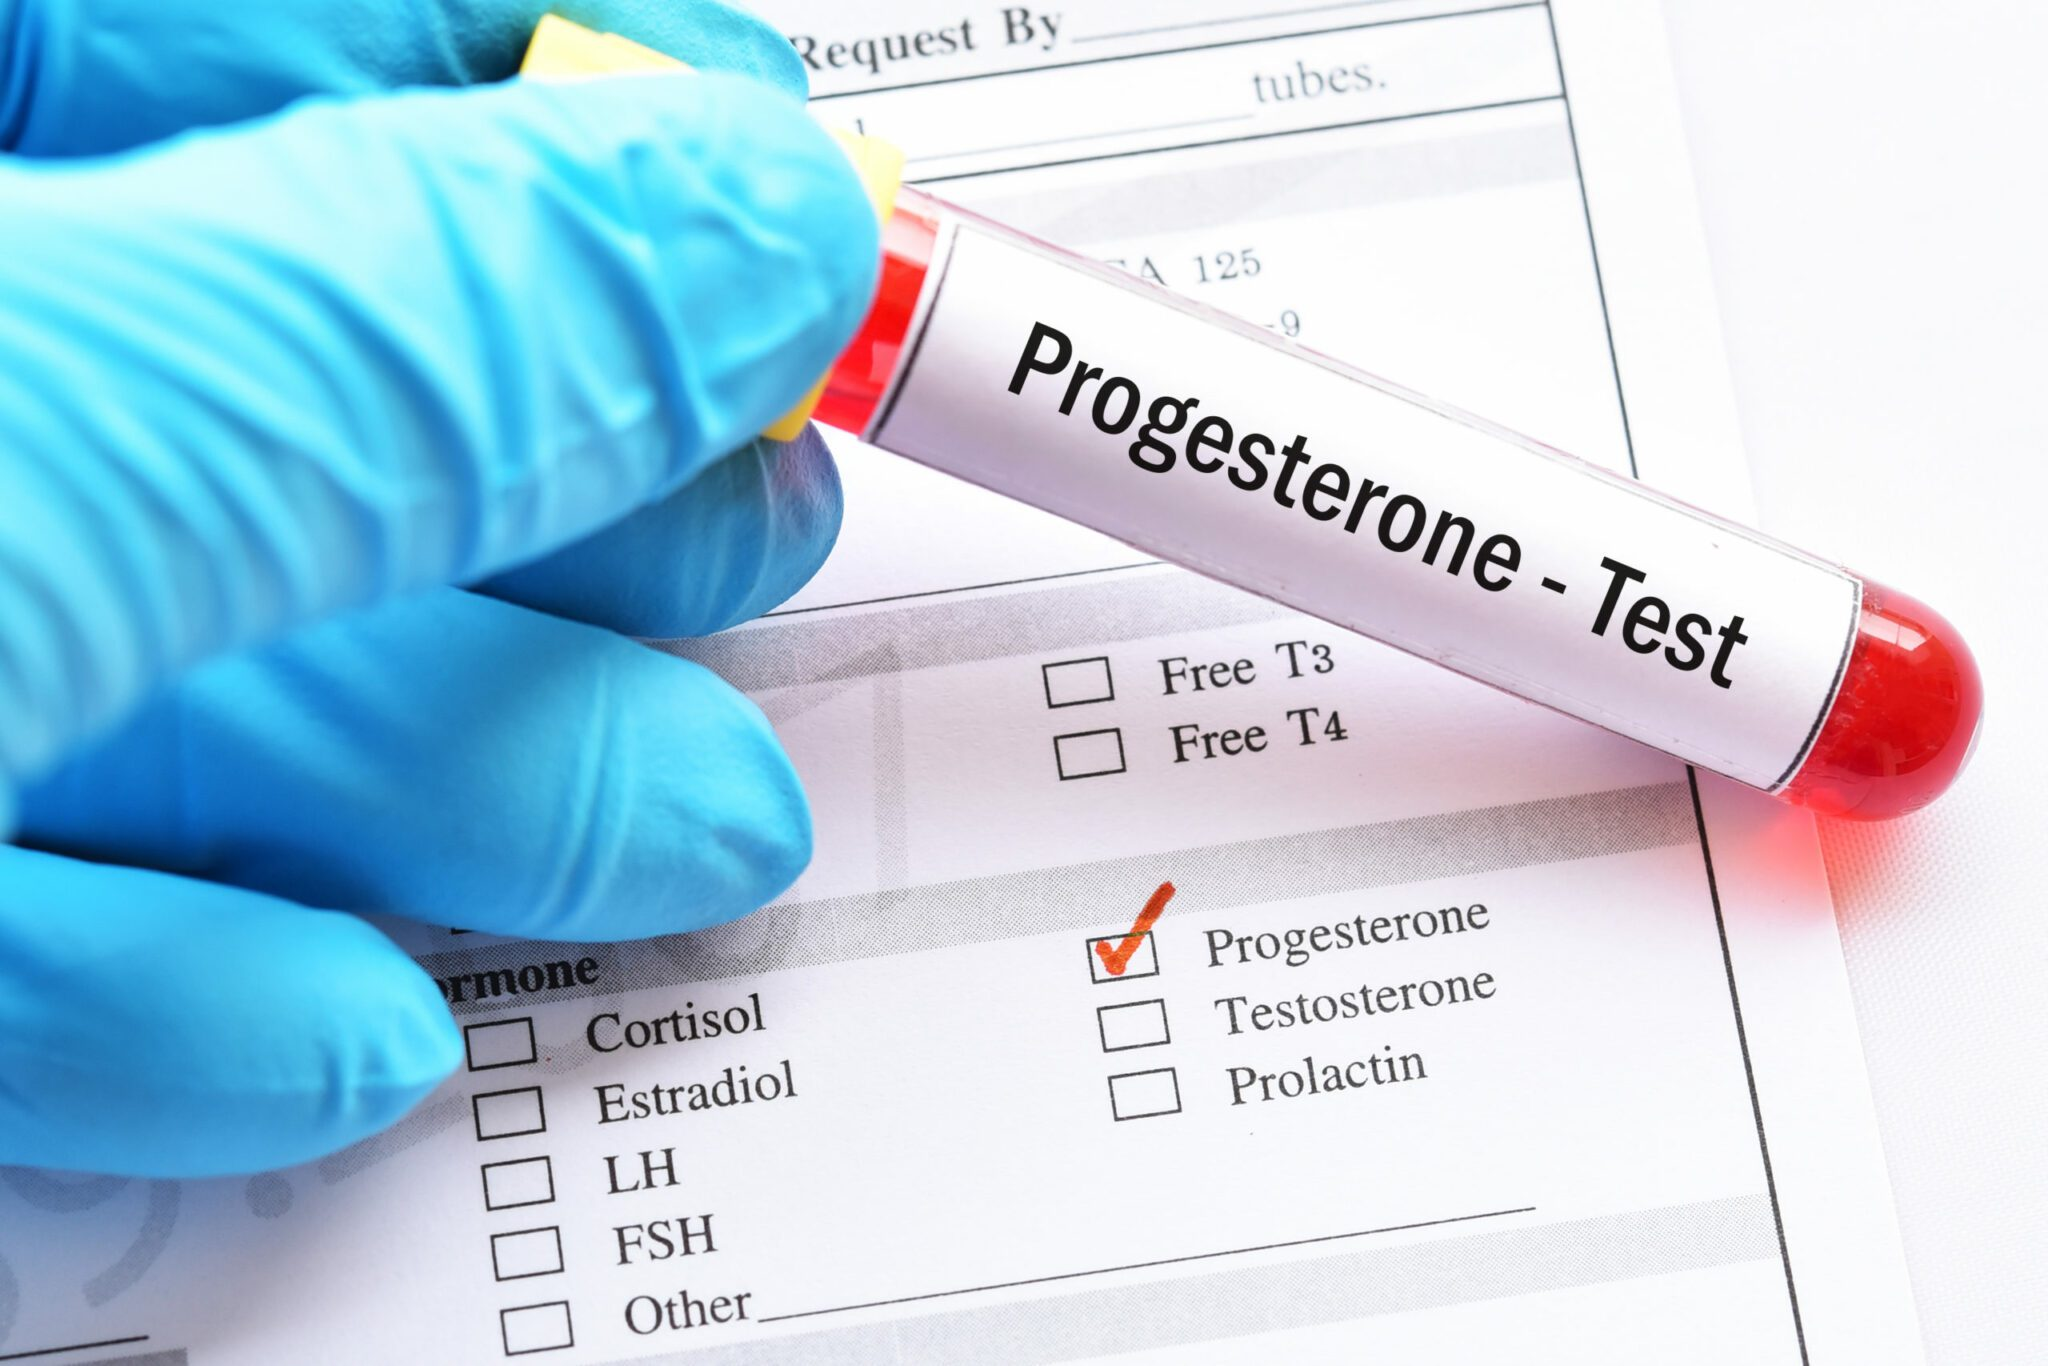 Progesterone Levels are too High